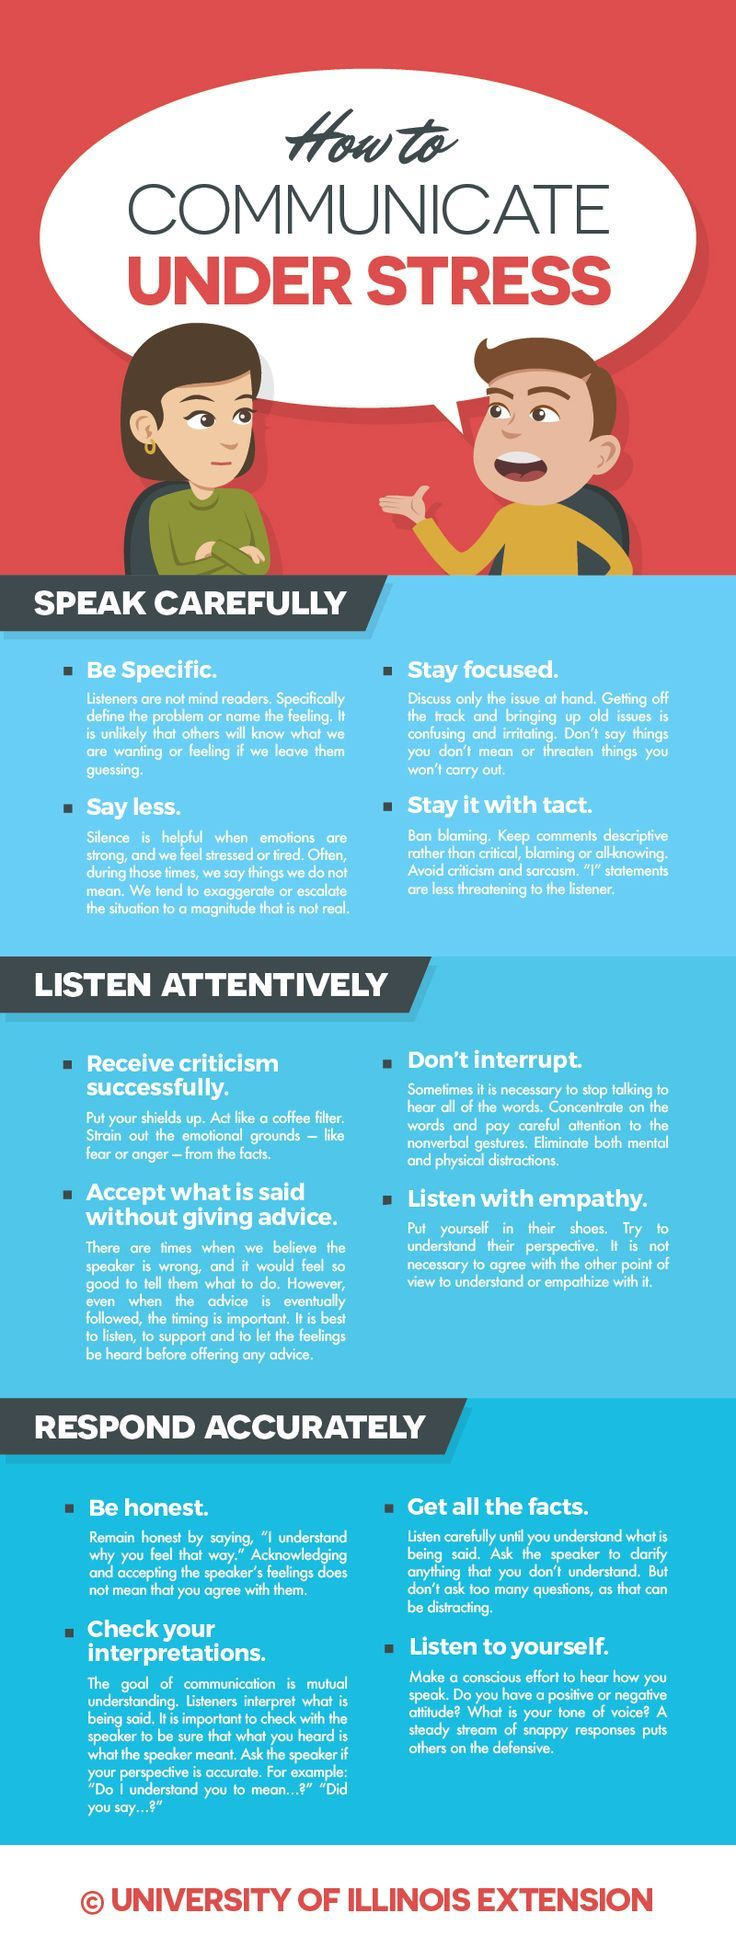 https://thoughtleadershipzen.blogspot.com/ How to Communicate Under Stress #tips Repinned by SOS Inc. Resources pinterest.com/sostherapy/.